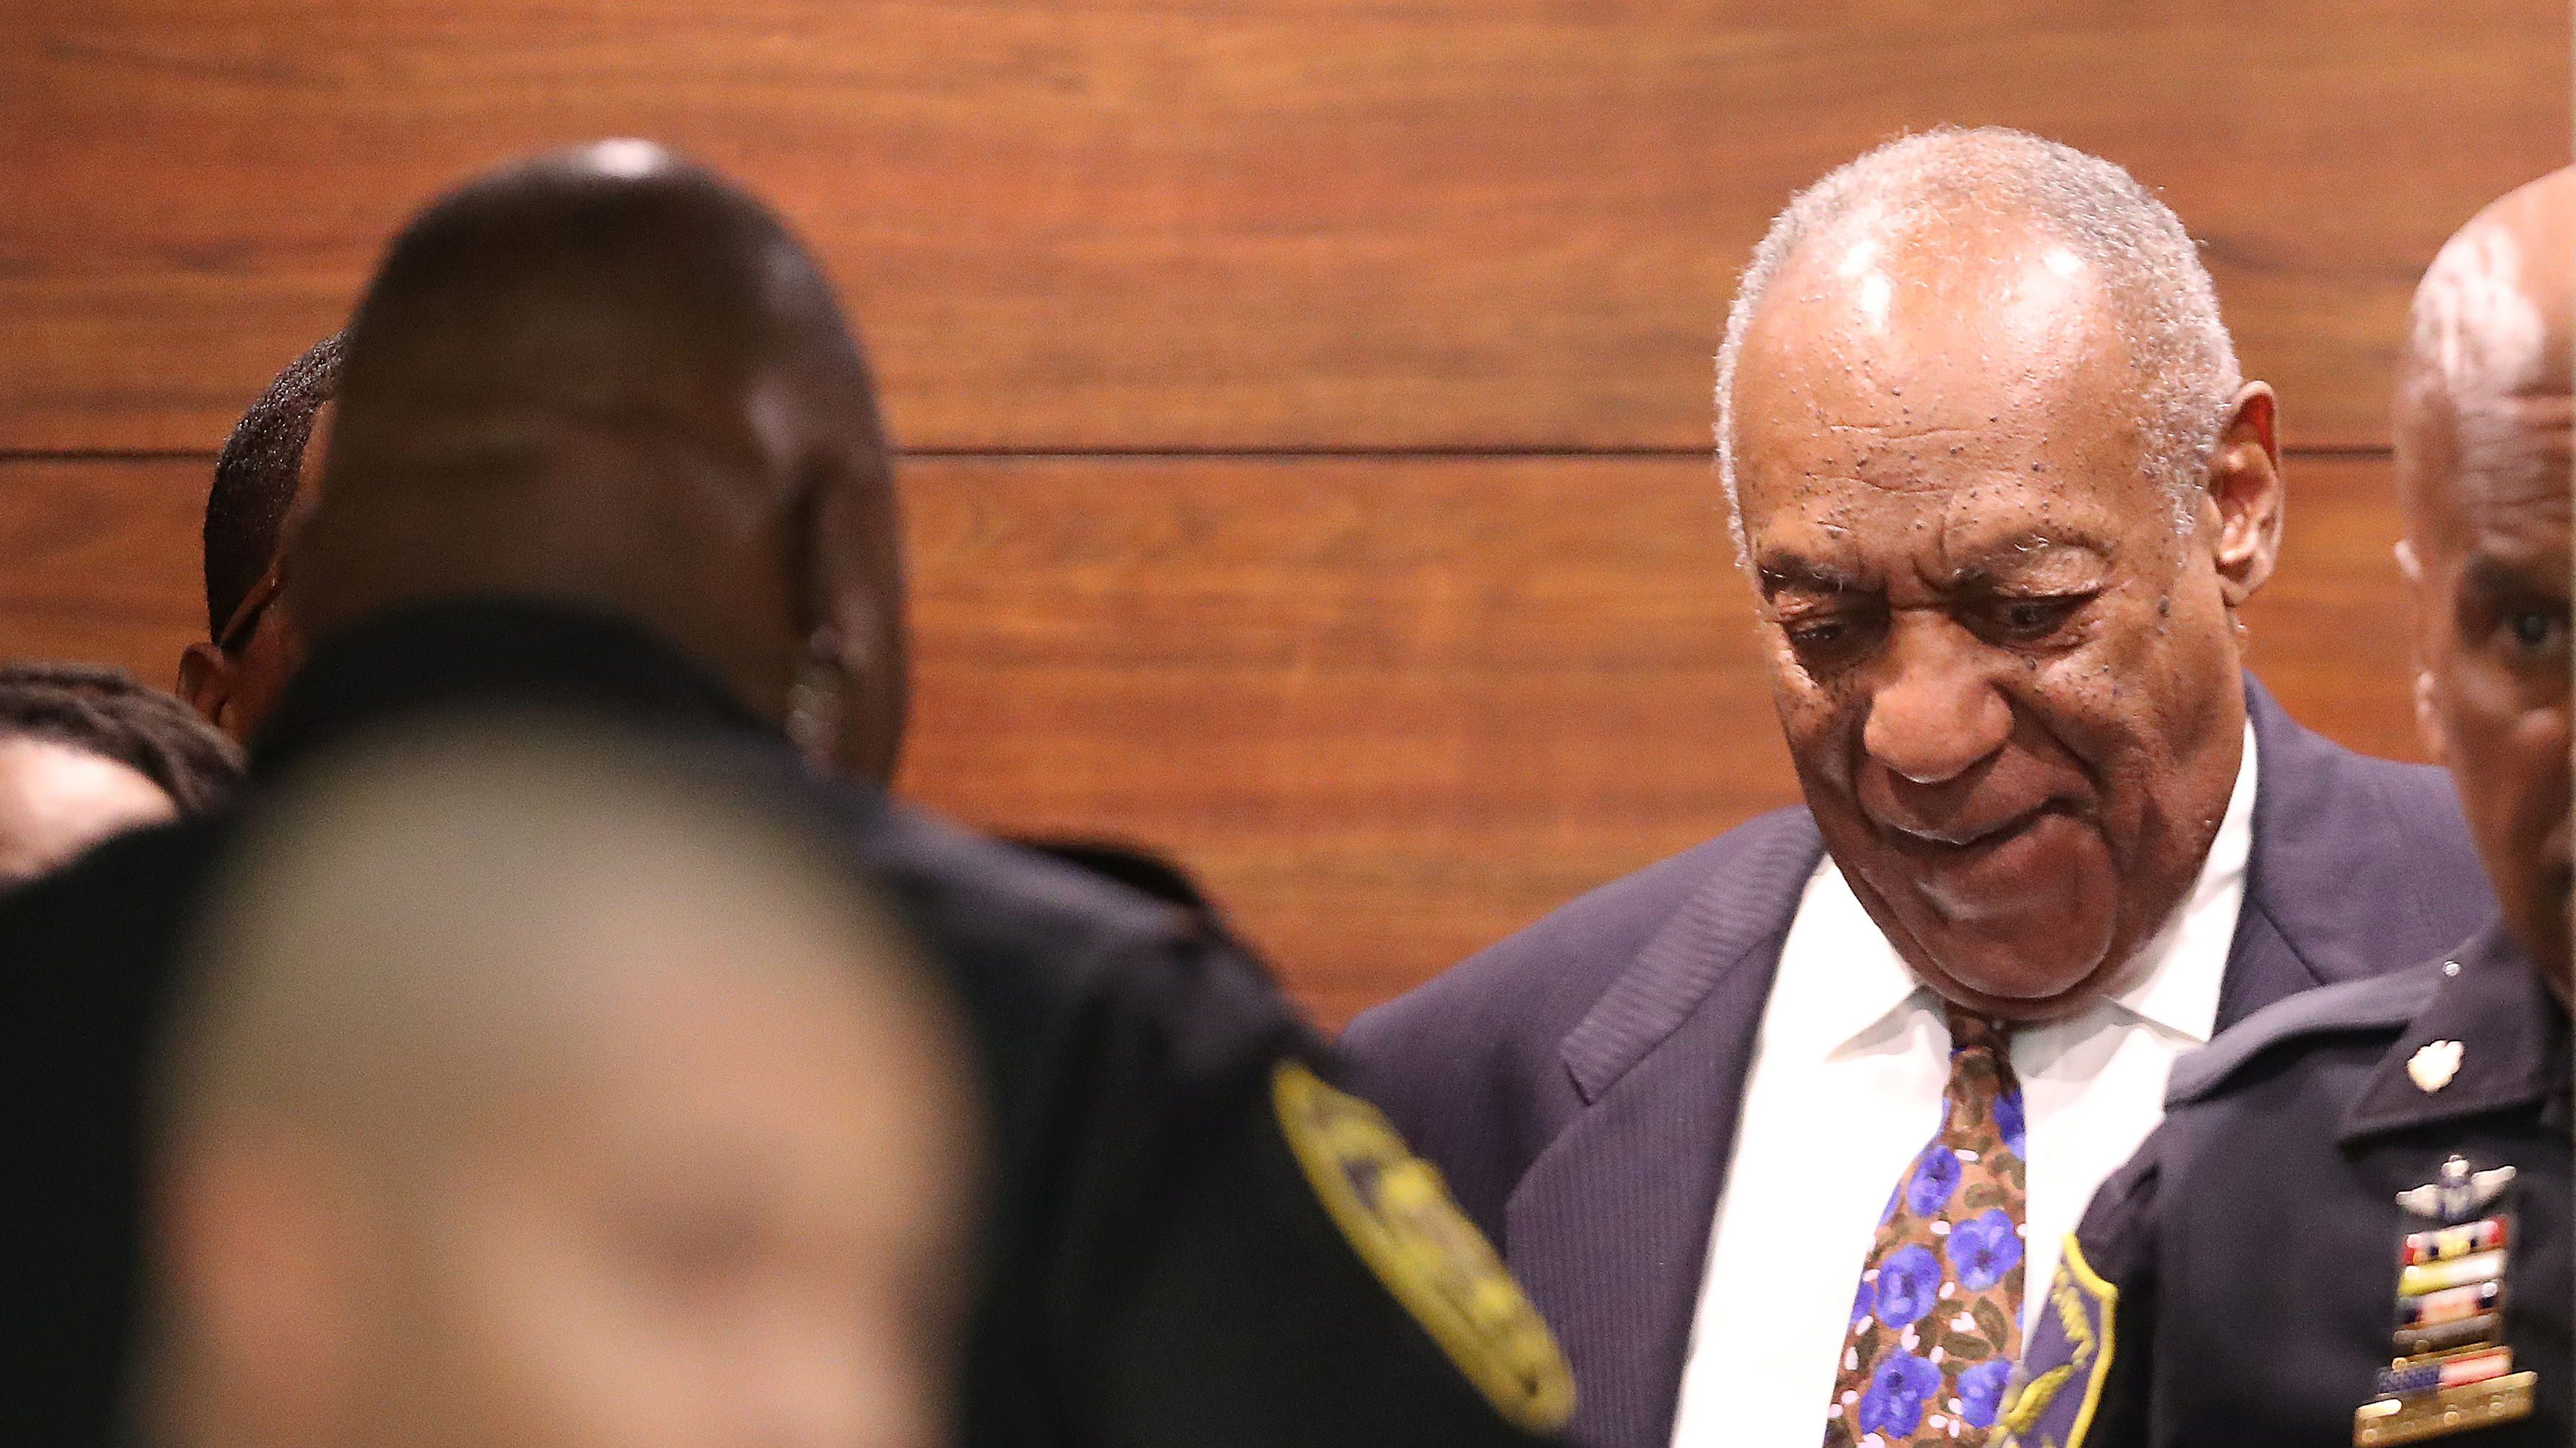 Actor and comedian Bill Cosby leaves the Montgomery County Courthouse after the first day of his sexual assault trial sentencing in Norristown, Pennsylvania.